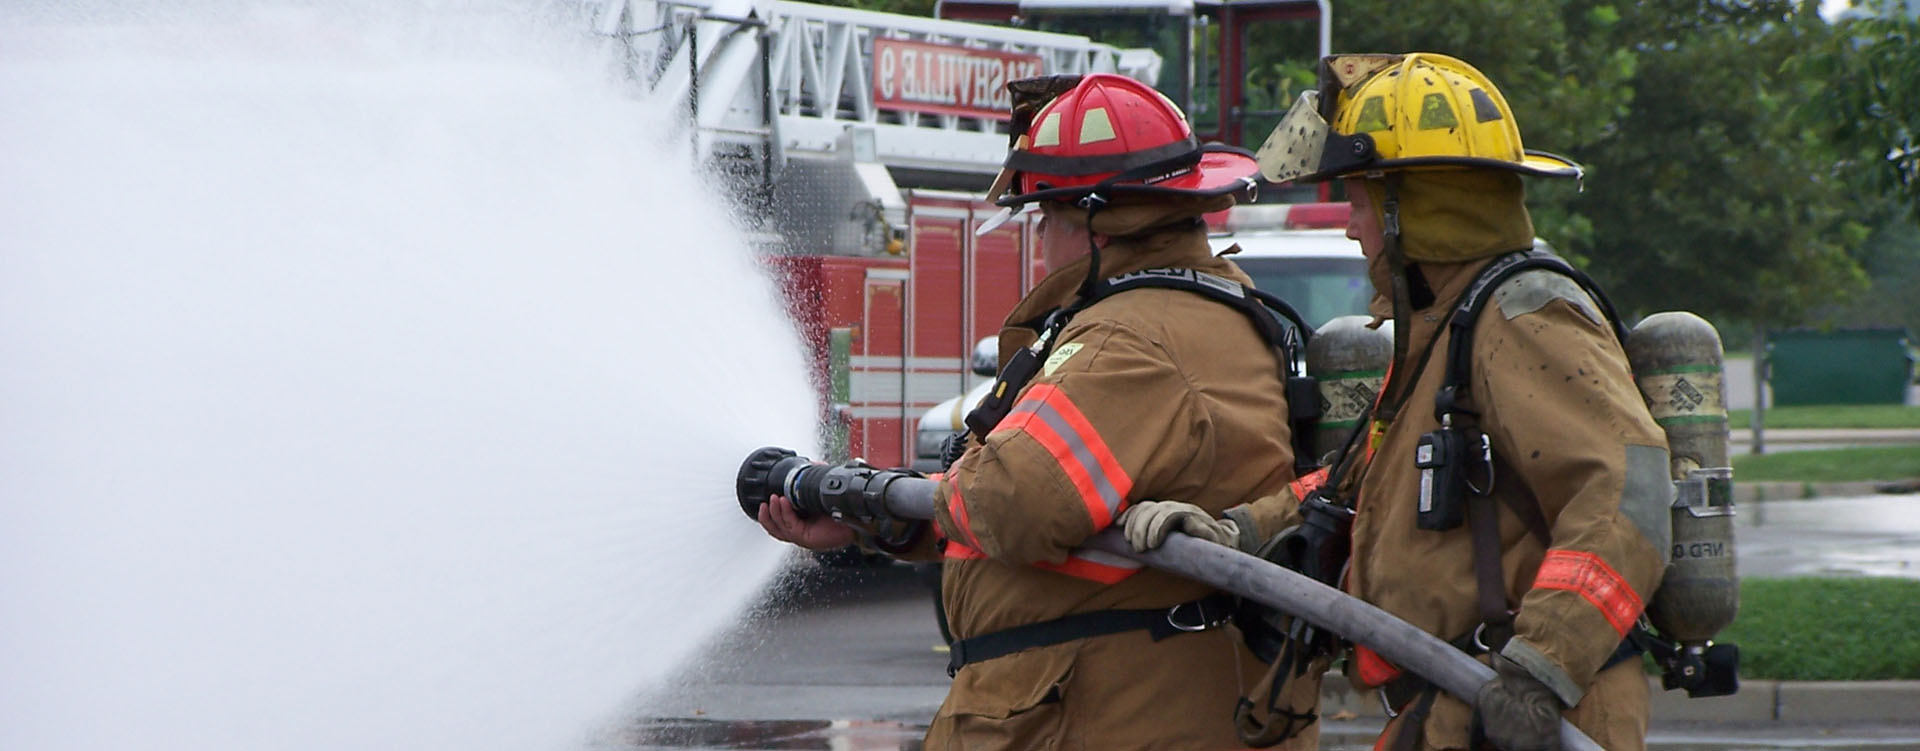 firemen spraying water